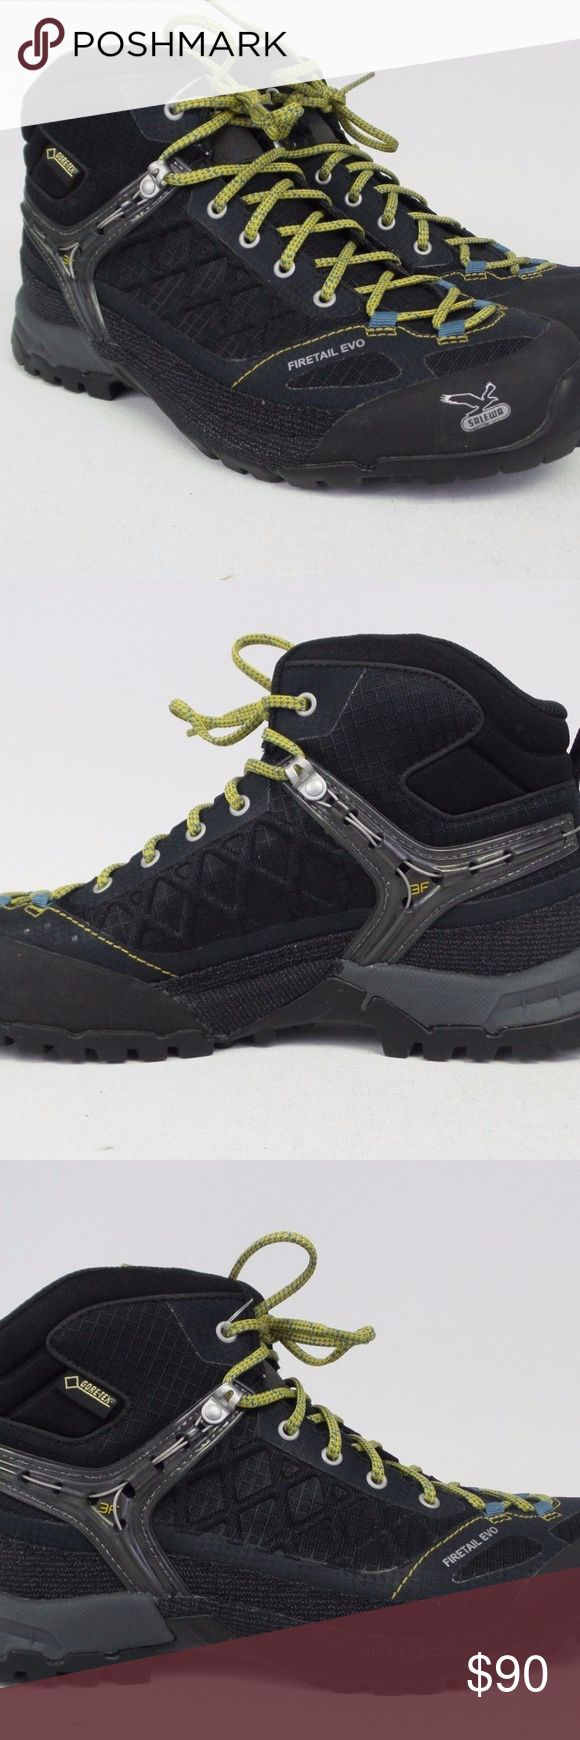 New Women's Salewa Firetail EVO Mid GTX Boots The Women's Firetail EVO Mid GTX Hiking Boot is one of Salewa's masterpieces, made for getting you to the alpine and back. Gore-Tex Extended Comfort provides waterproof breathability in summer rainstorms, spring showers, and fall's first snowdrop.   Color: Black/Gneiss  IL: JJ  Item: 171 Salewa Shoes Athletic Shoes